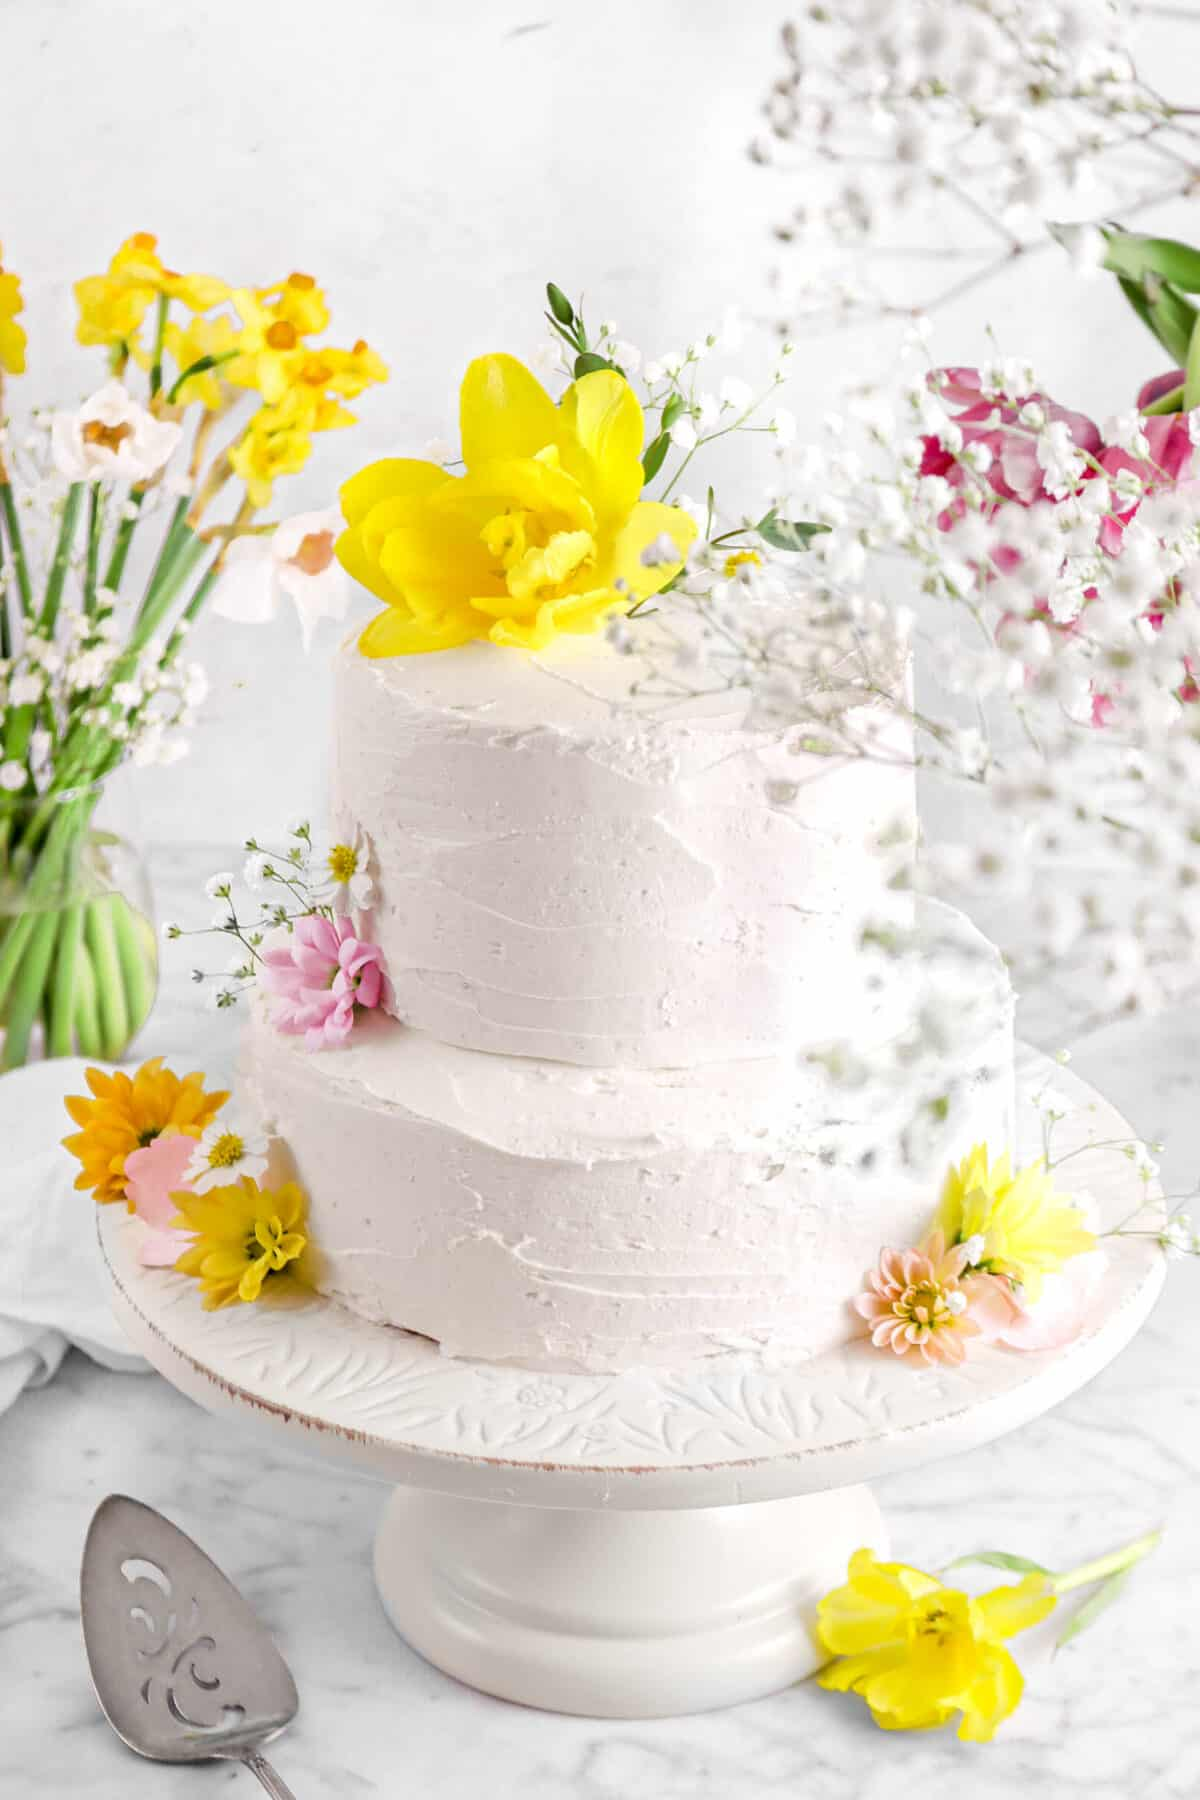 vegan almond cake on cake stand with flowers